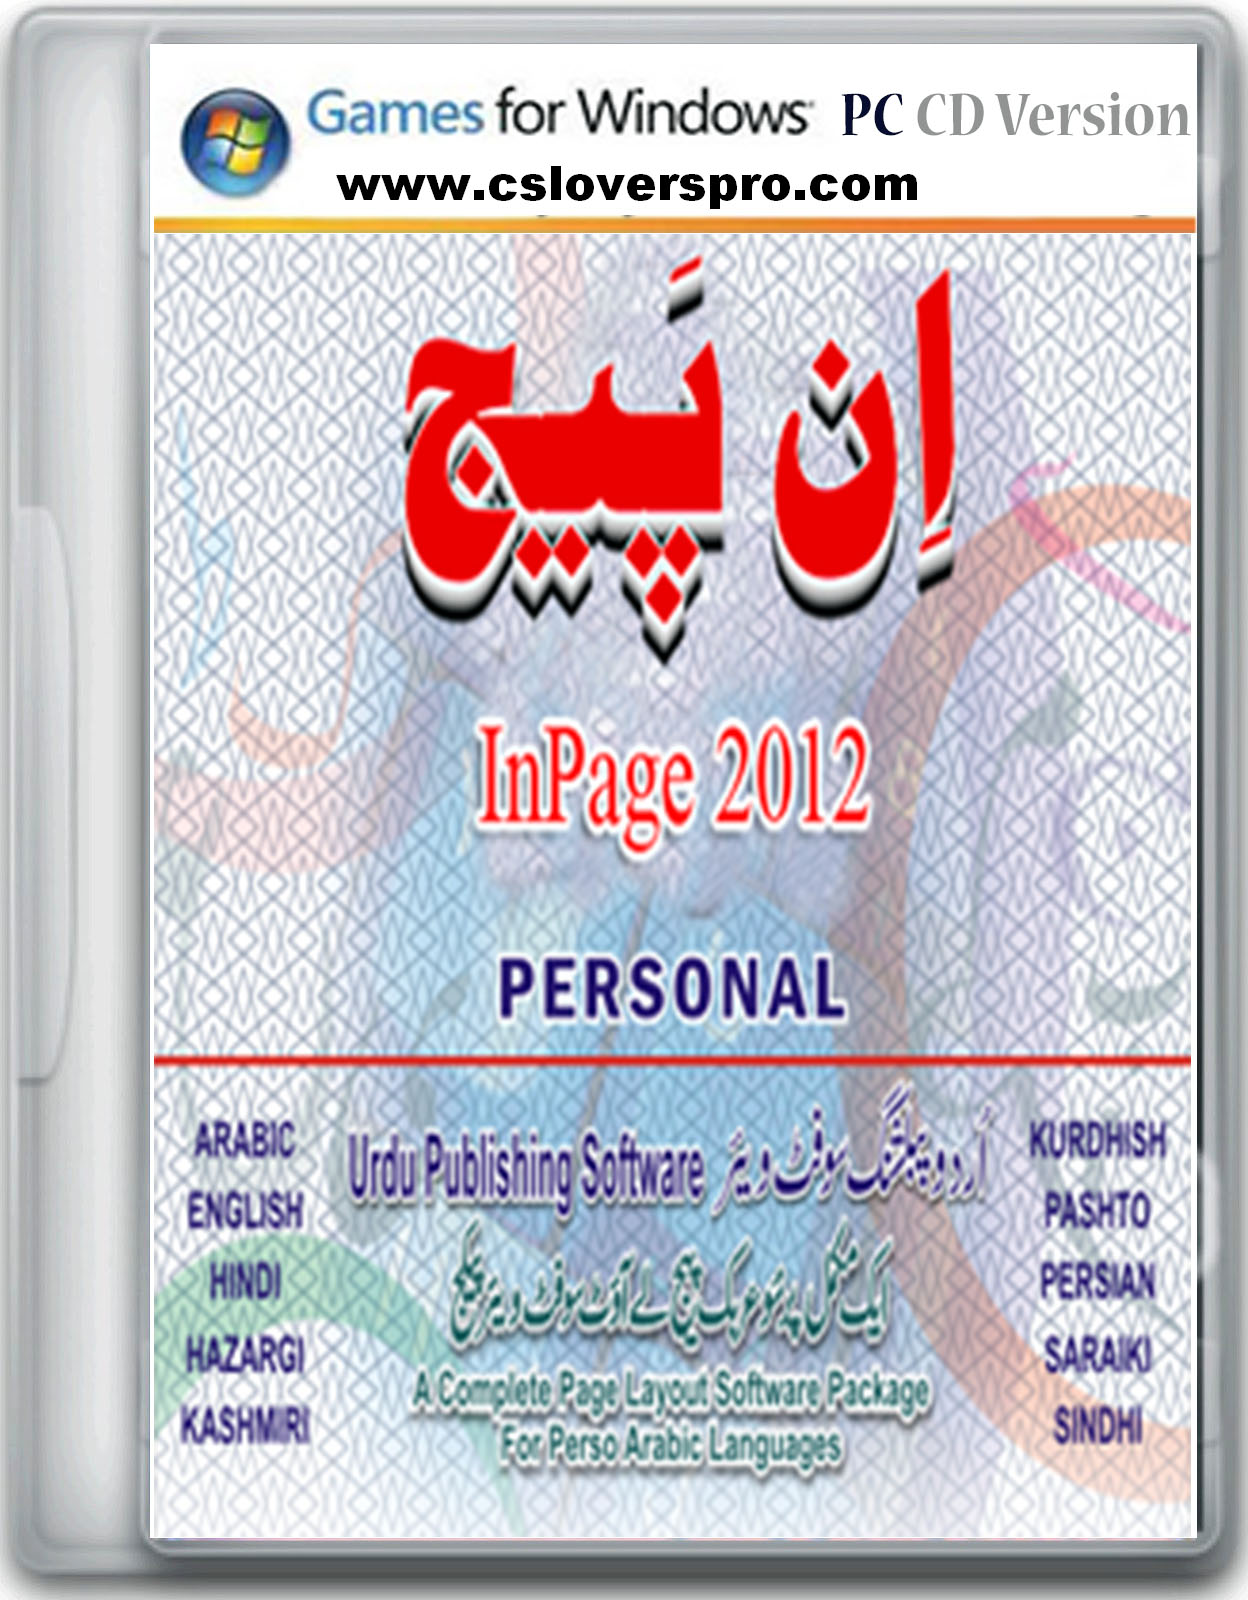 Inpage urdu 2014 is now available for free download as full.